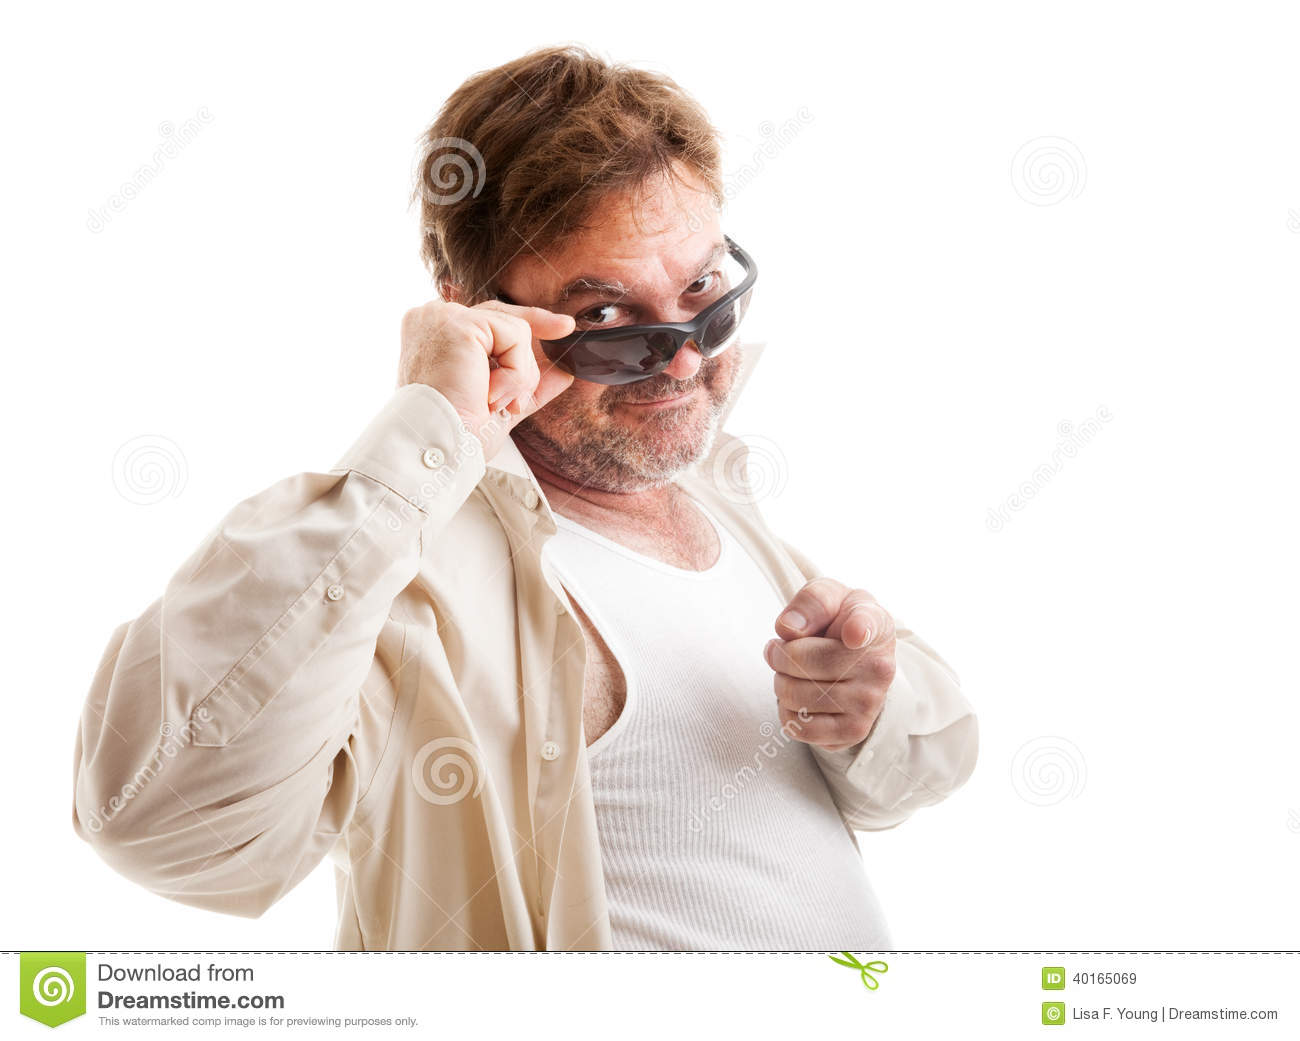 Divorced Man - Mid-Life Crisis Stock Image - Image of cool